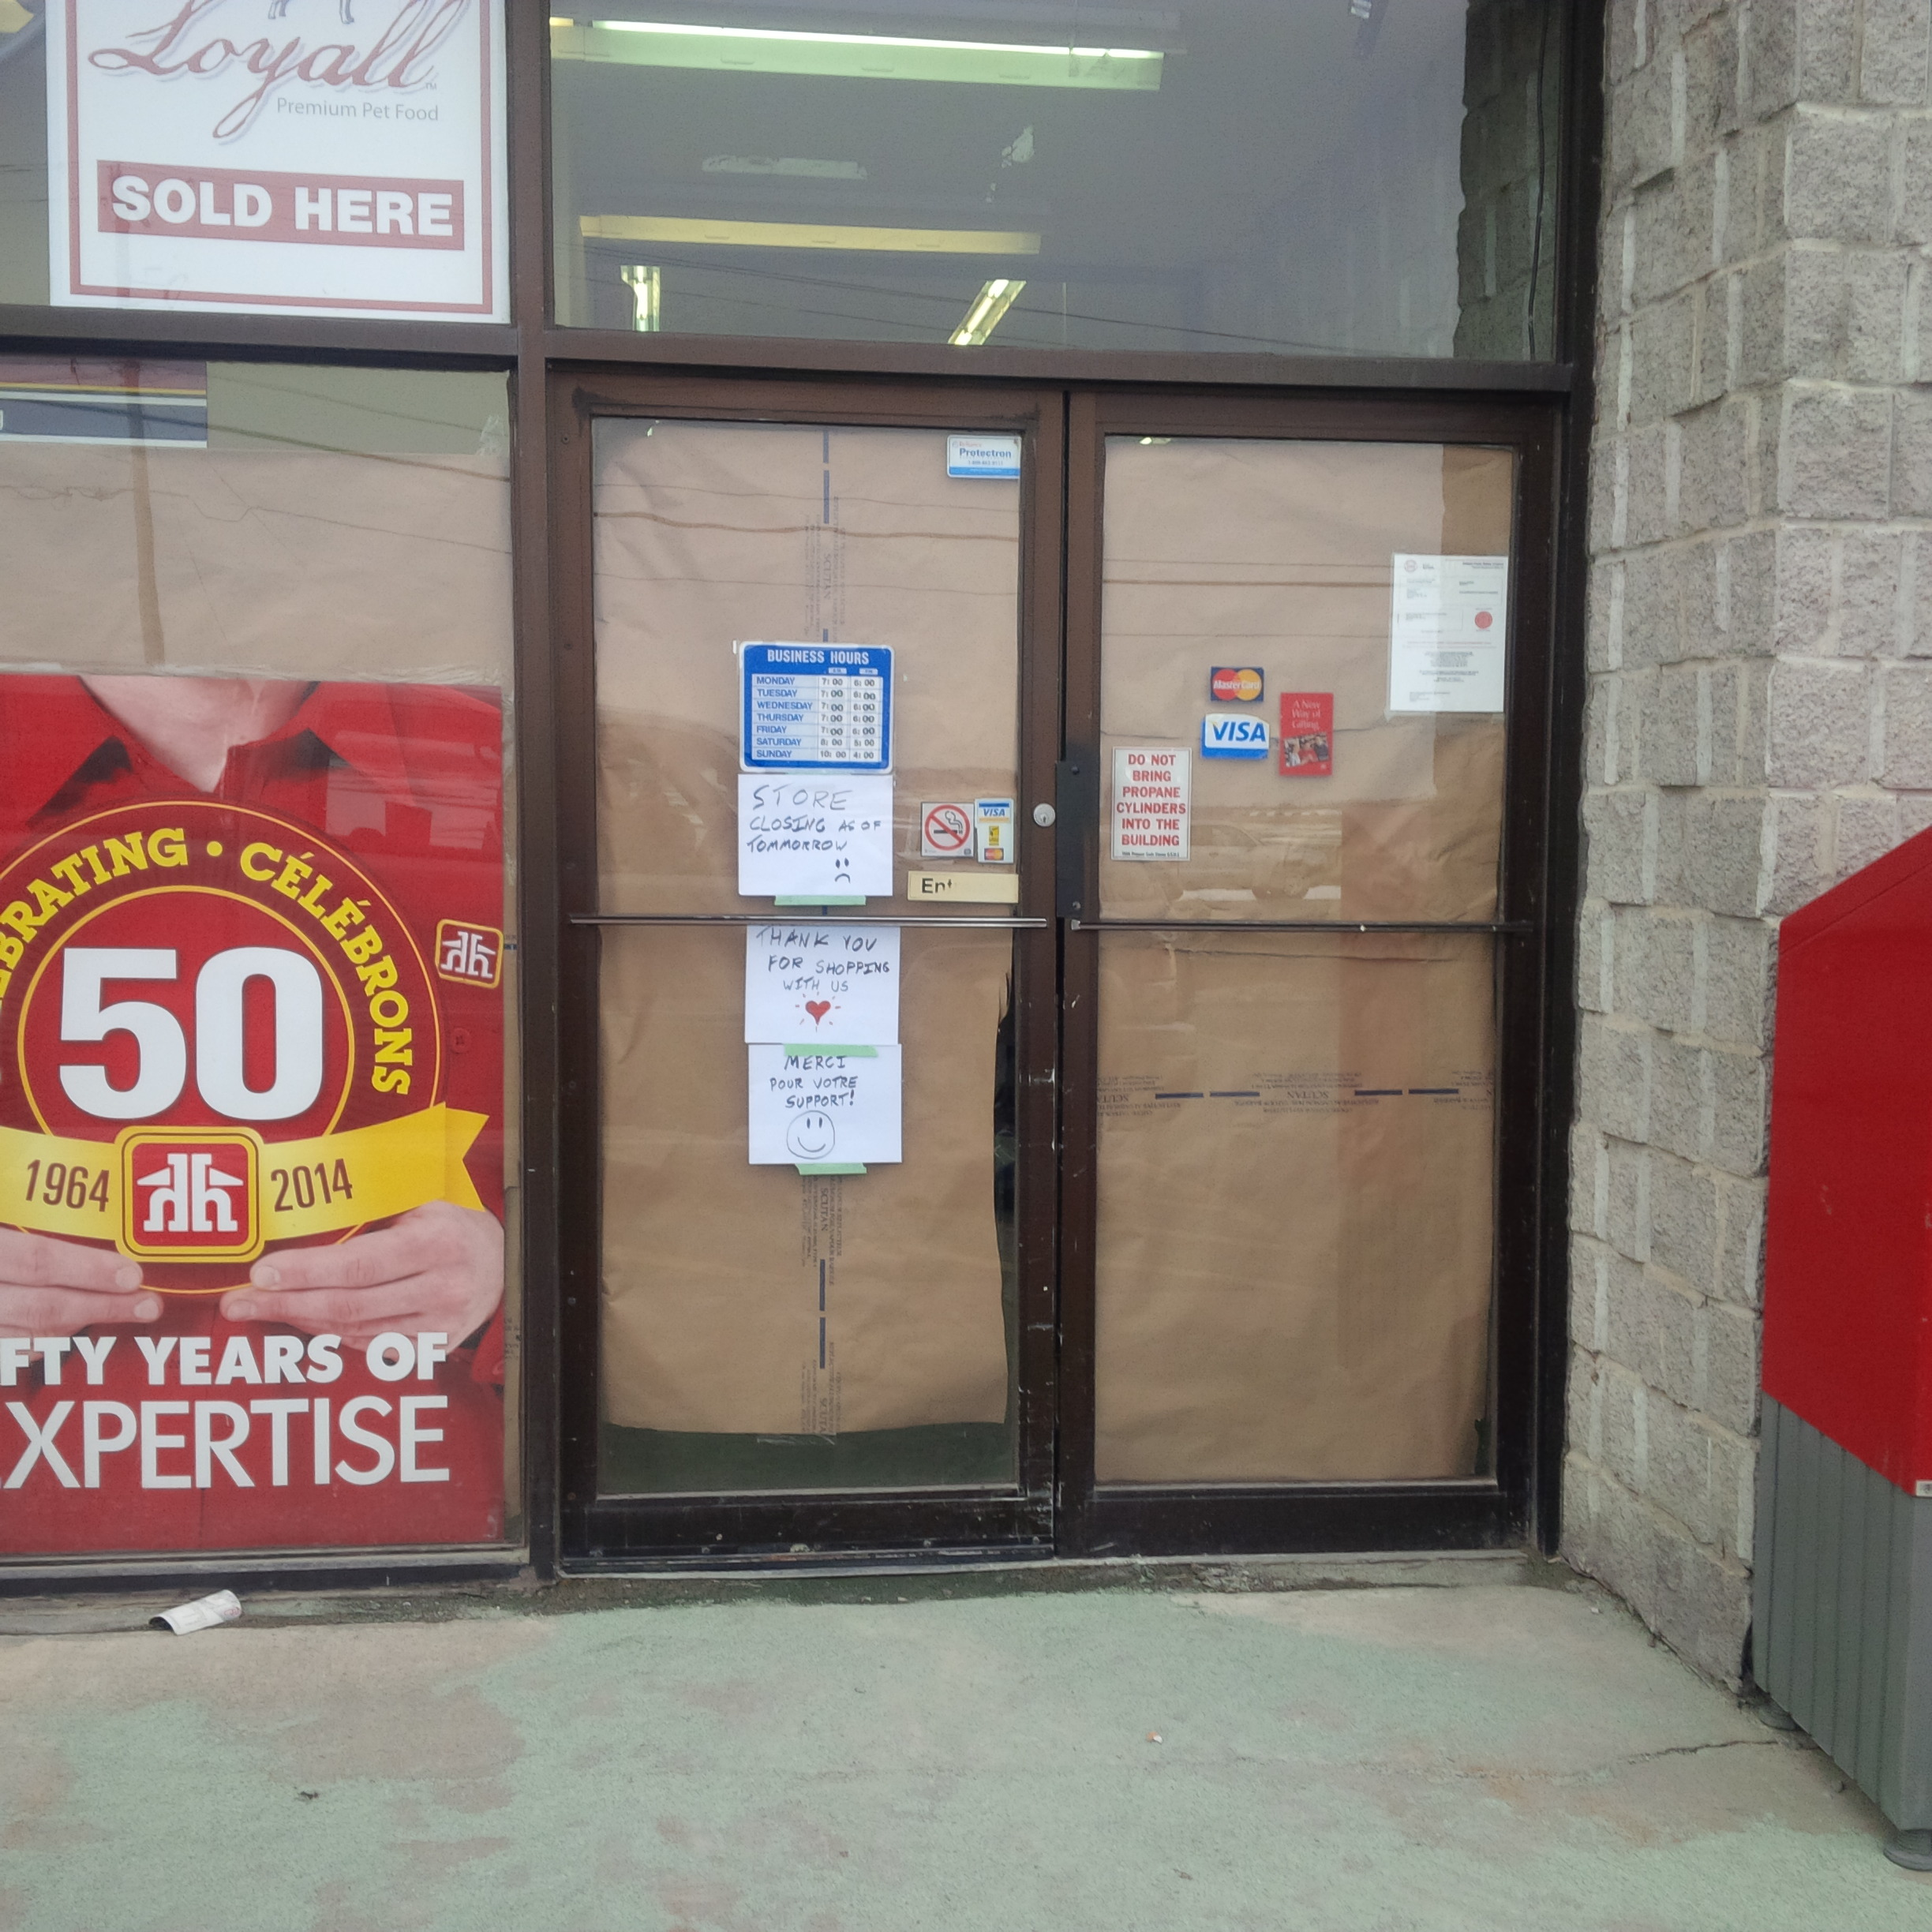 Sarsfield Home Hardware closes its doors